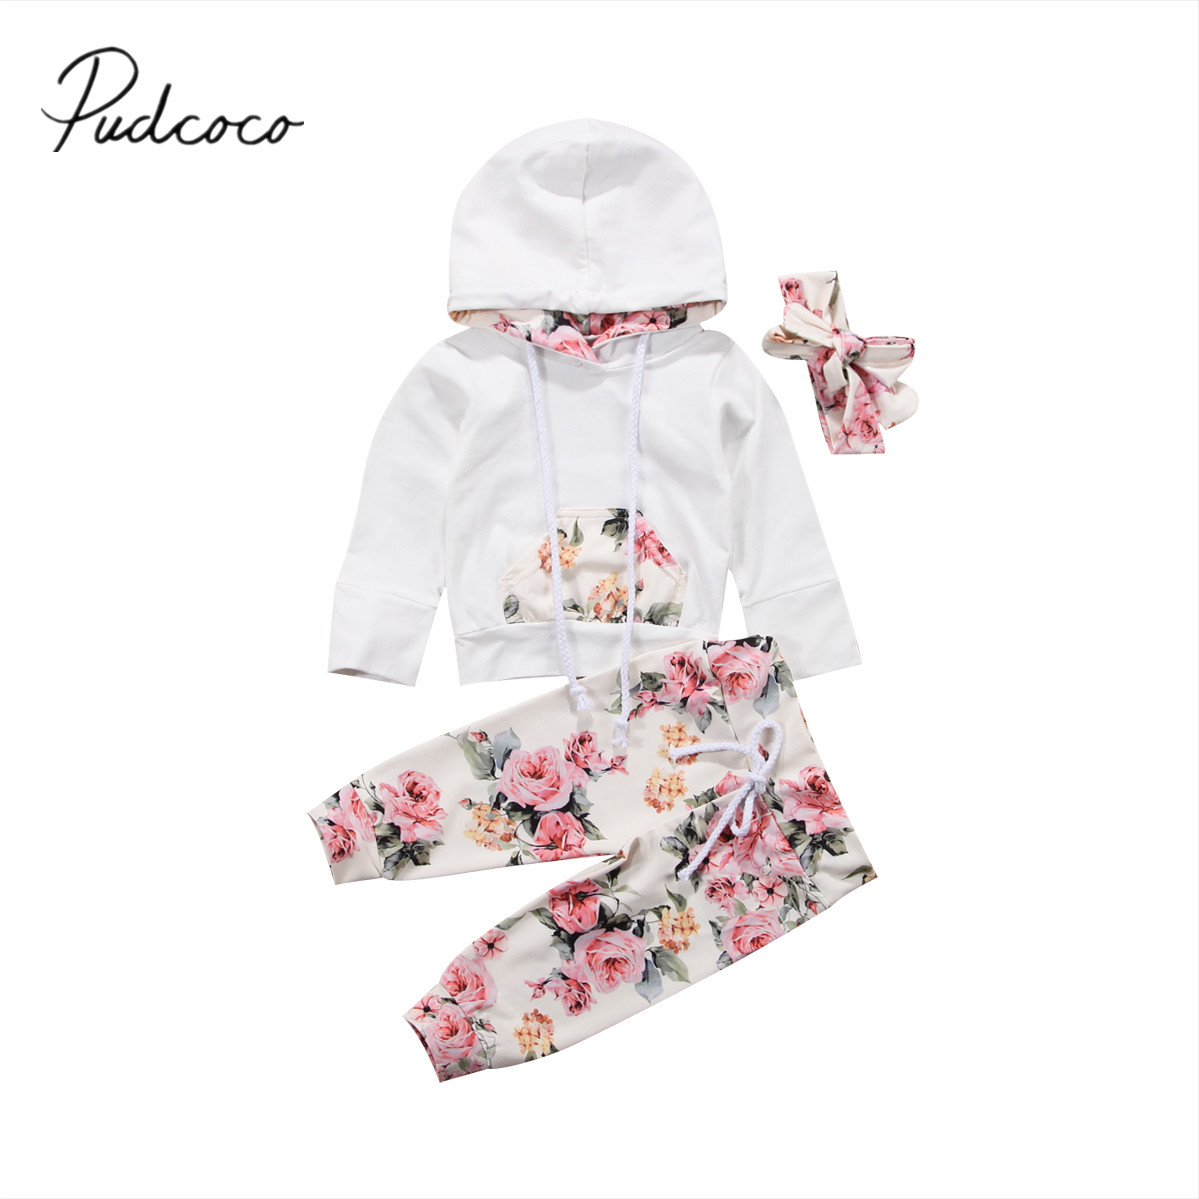 2017 Brand New Infant Toddler Newborn Baby Girls Floral Outfit Clothes Tracksuit Hooded Tops+Leggings Pants Headband 3Pcs Set fashion 2pcs set newborn baby girls jumpsuit toddler girls flower pattern outfit clothes romper bodysuit pants